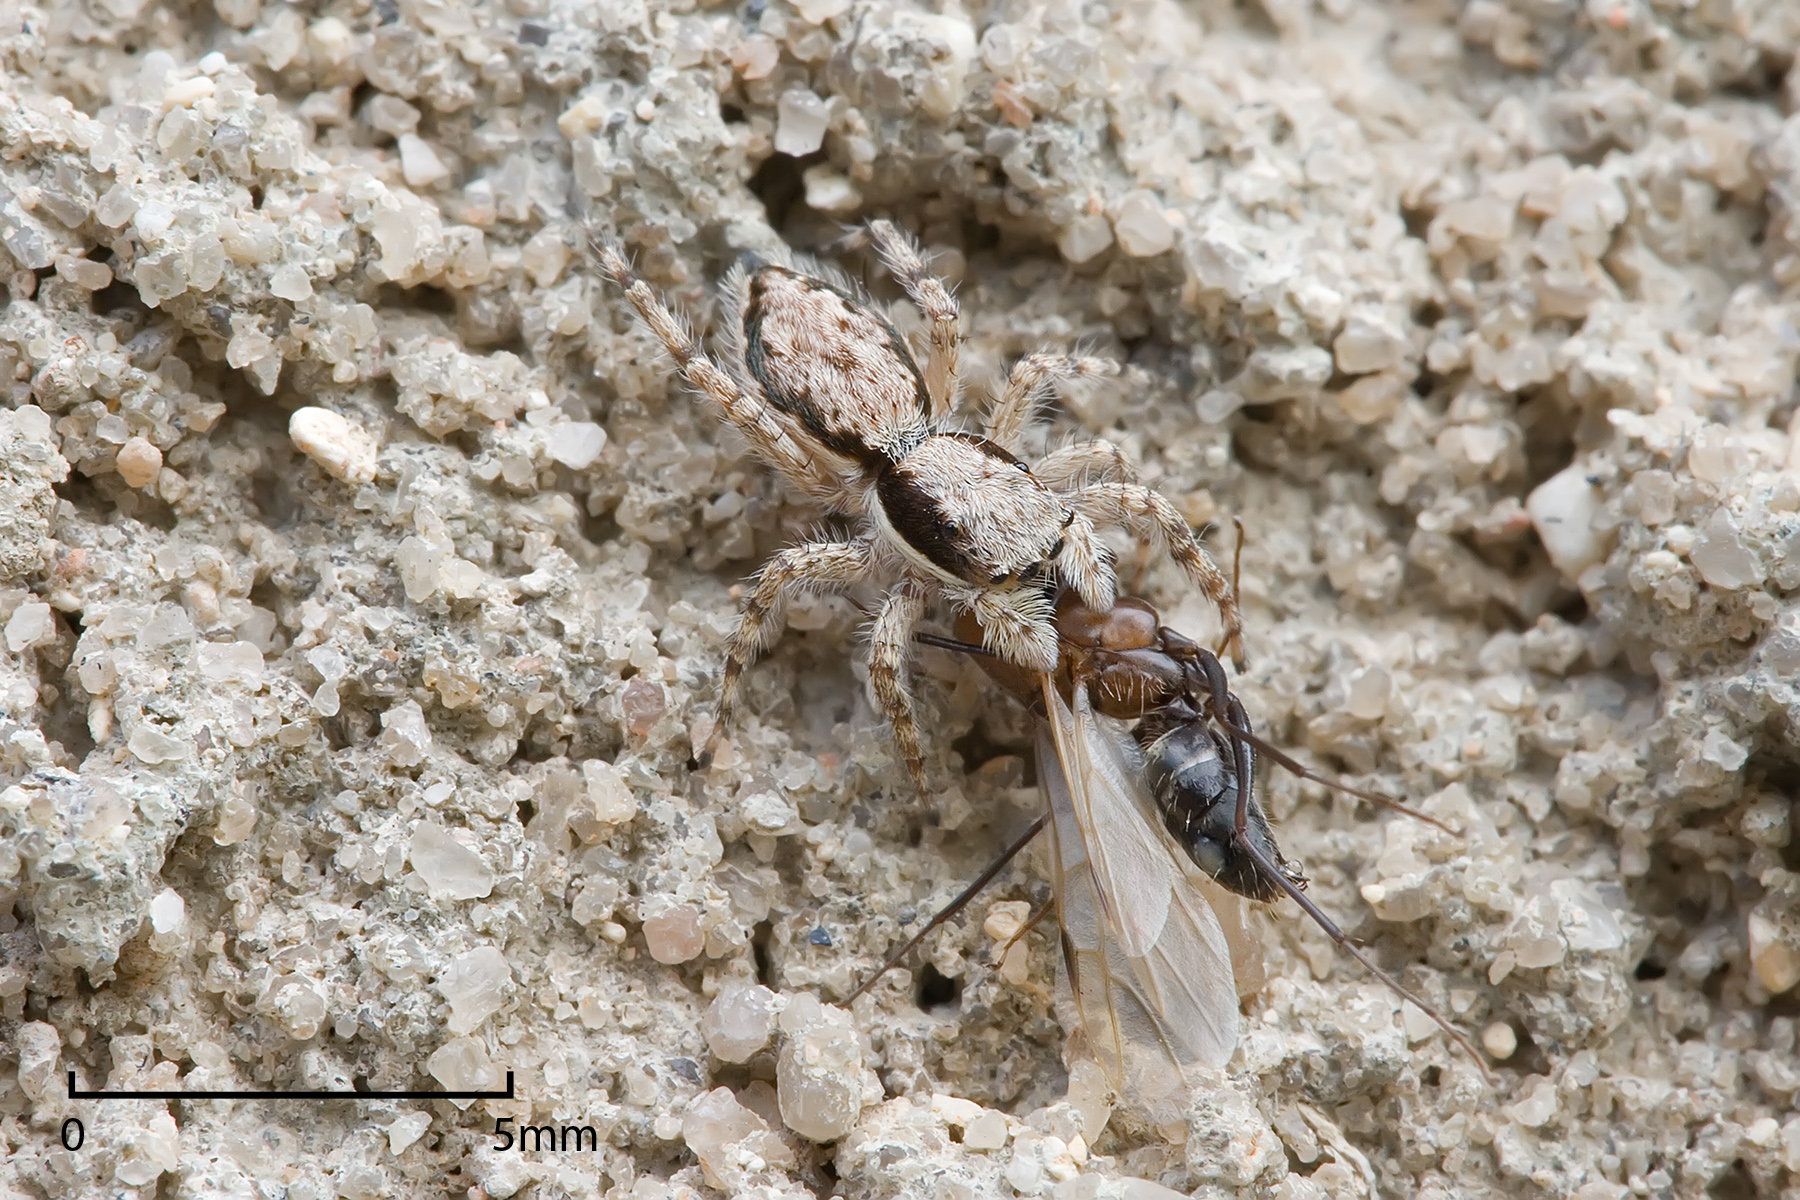 Spiders sometimes feed on ants